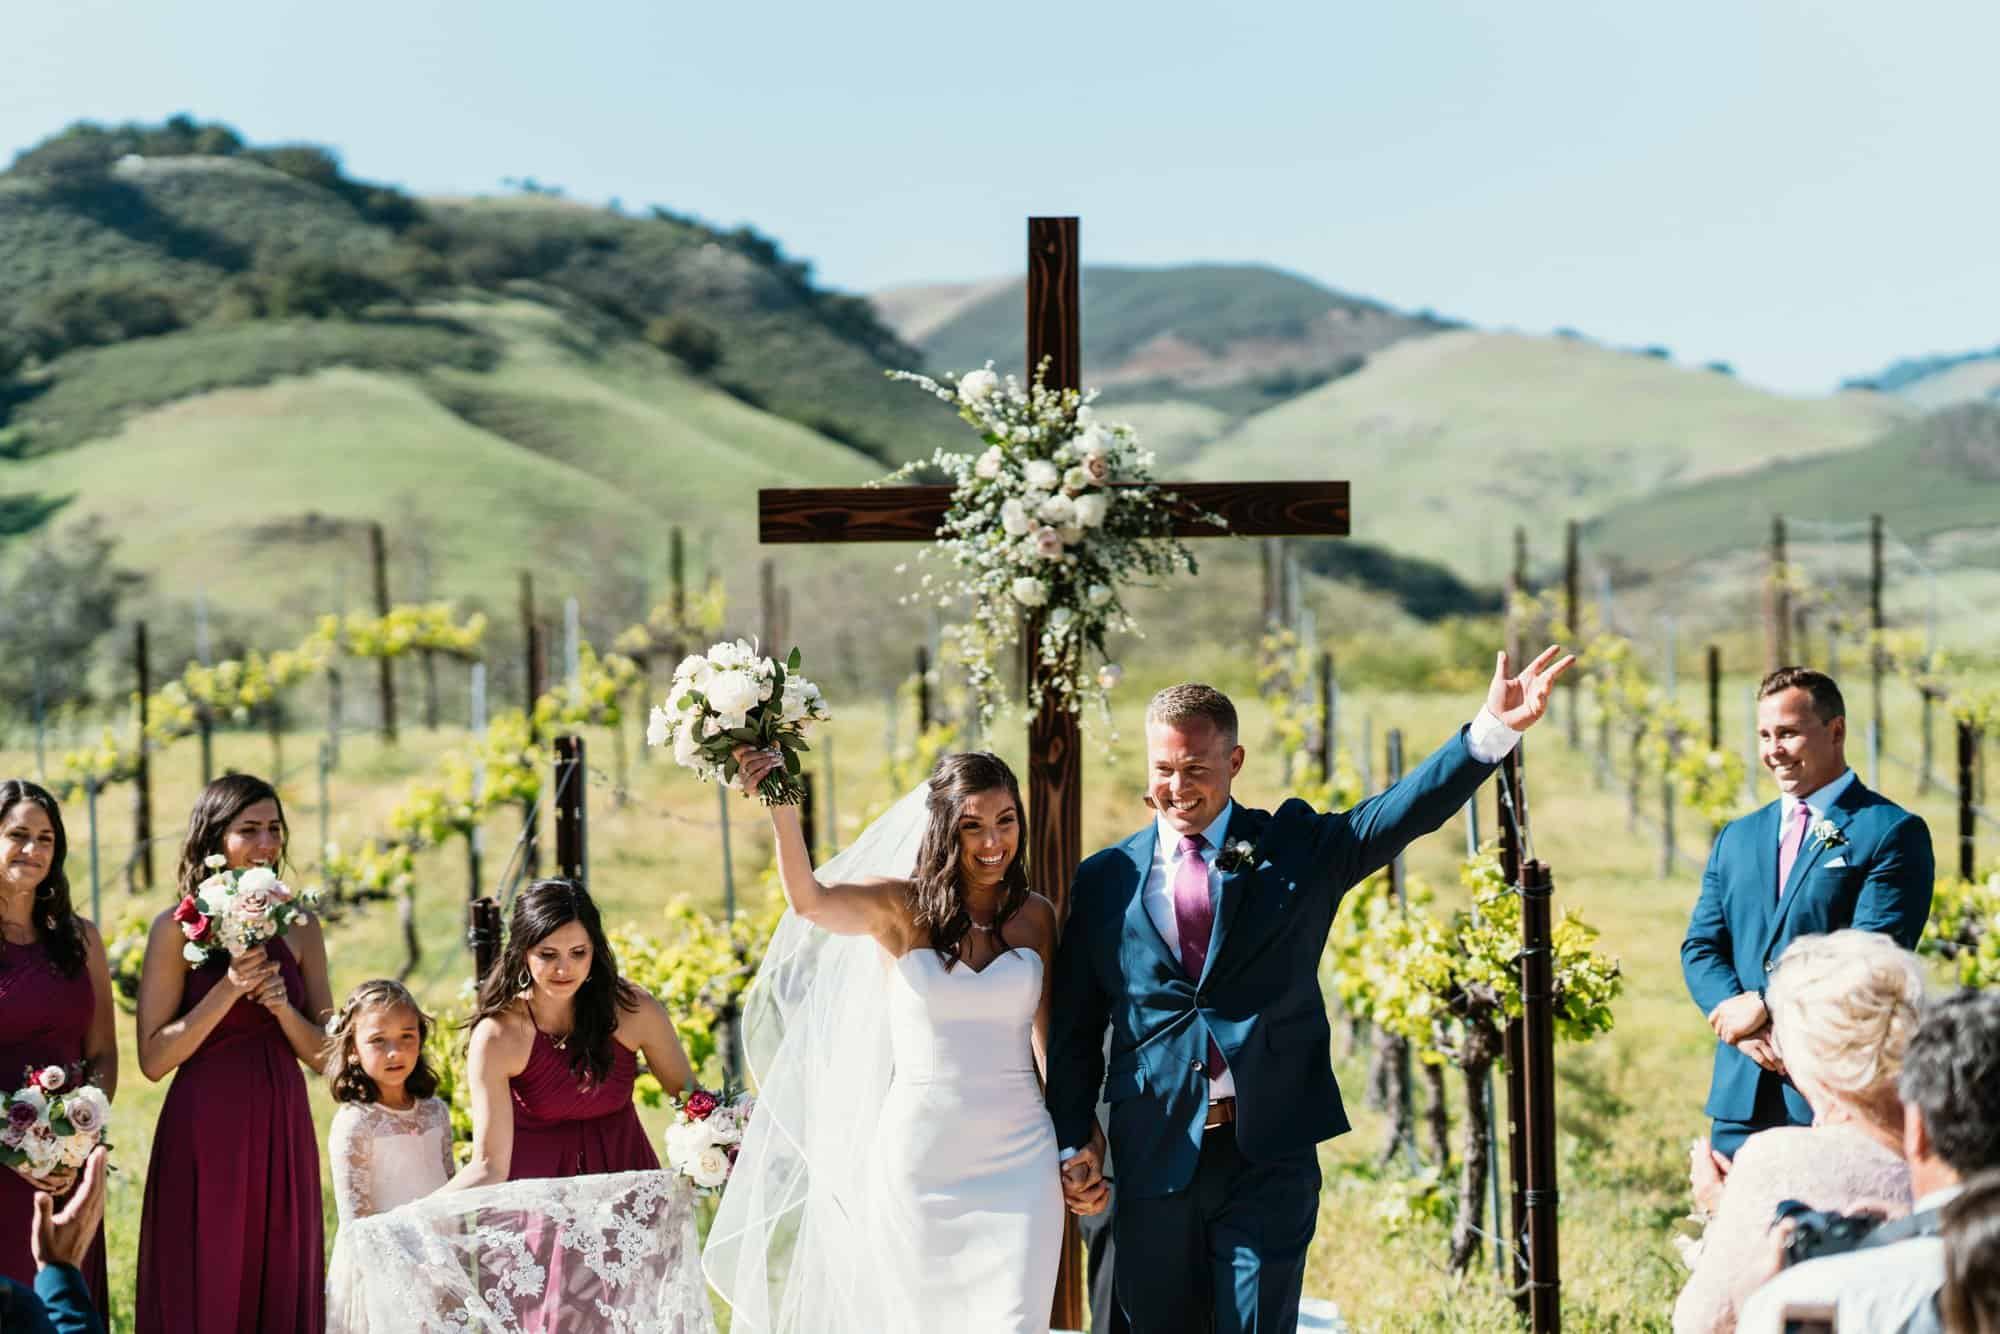 higuera ranch wedding venue